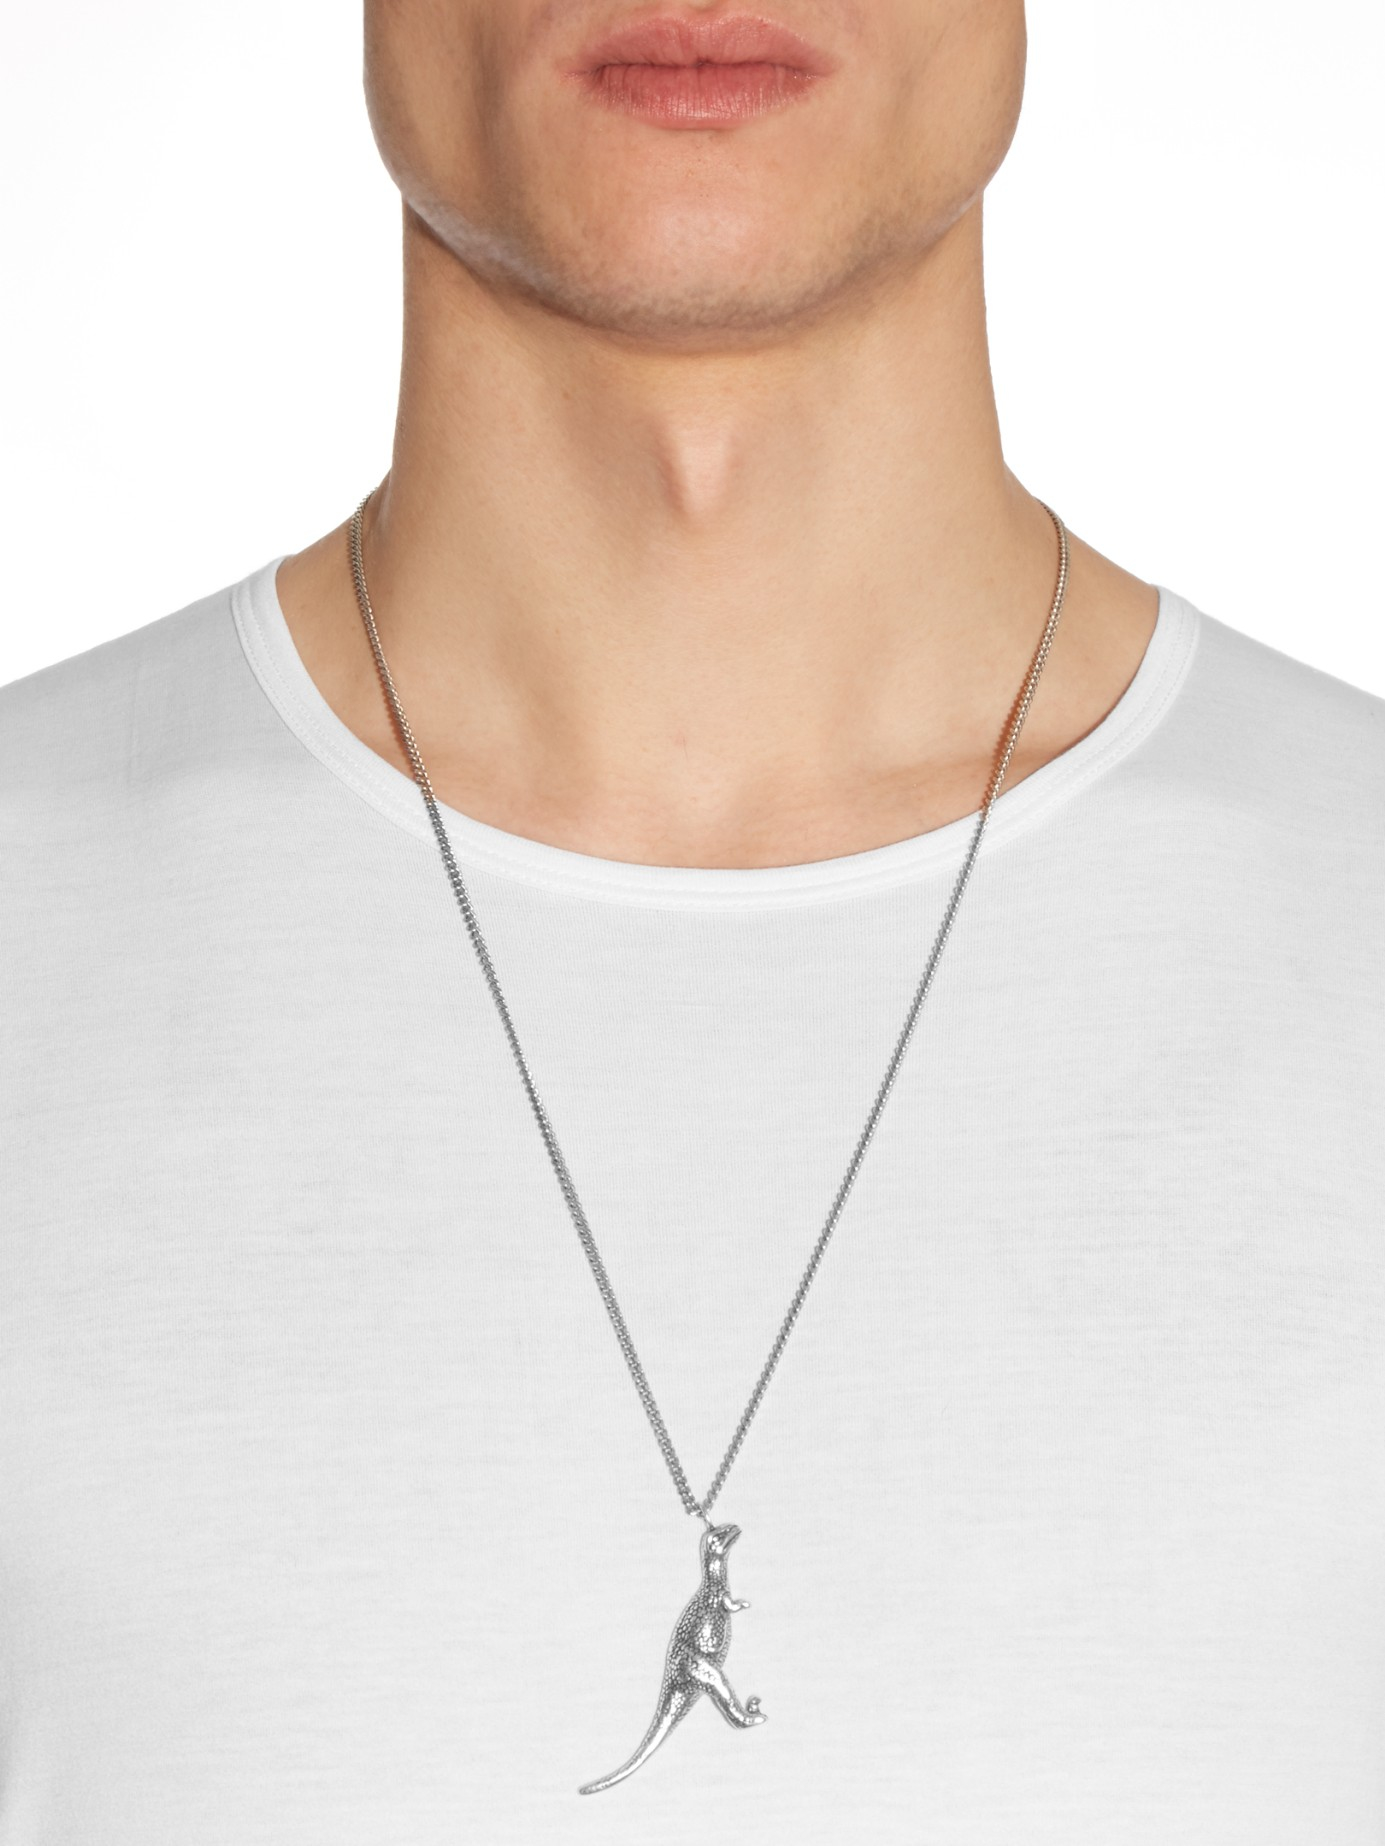 e693a479cdd Saint Laurent Dinosaur Necklace in Metallic for Men - Lyst